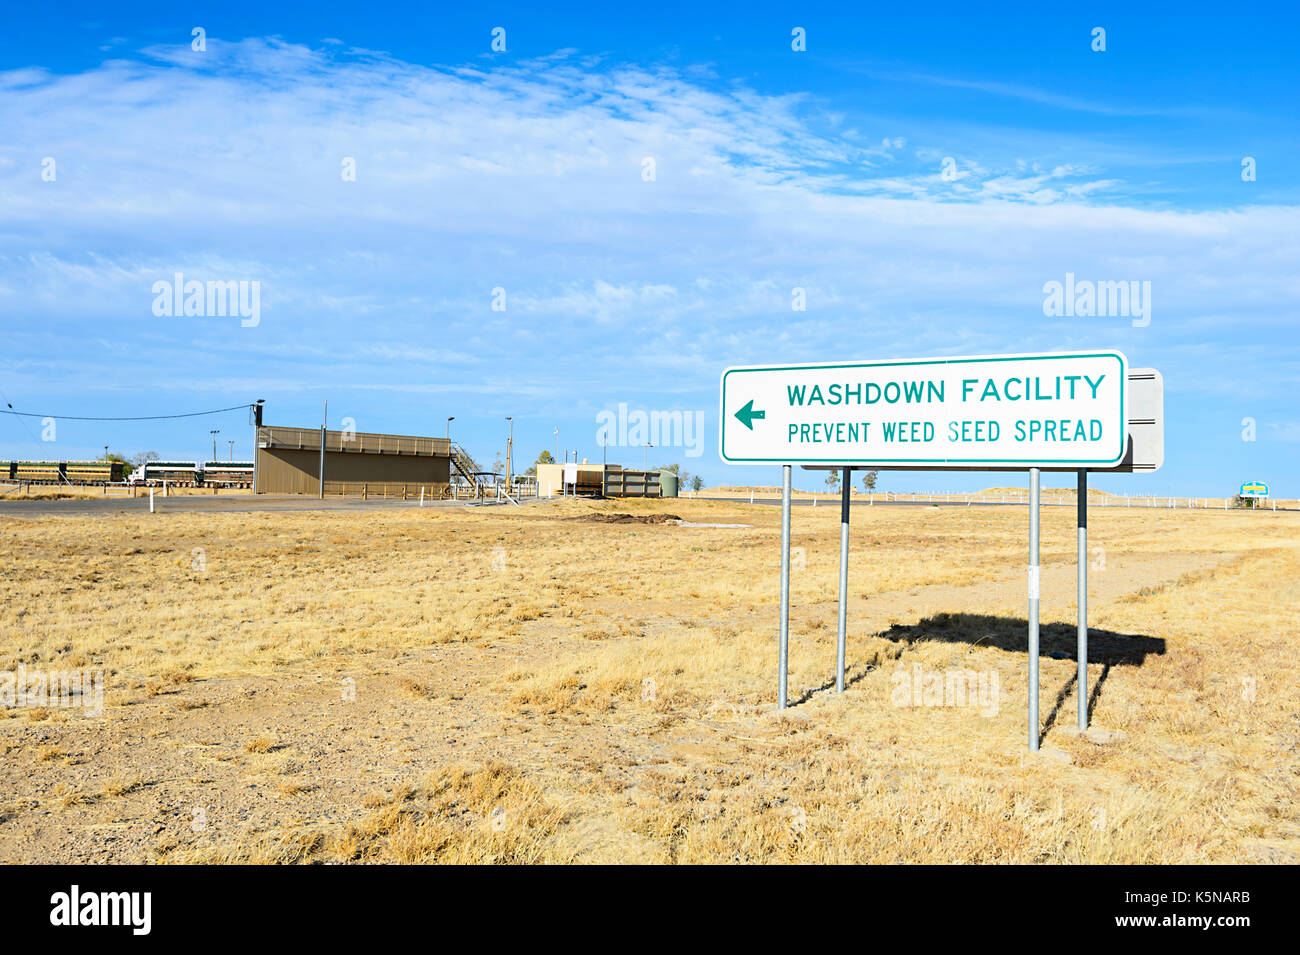 washdown-facility-sign-as-a-precaution-a